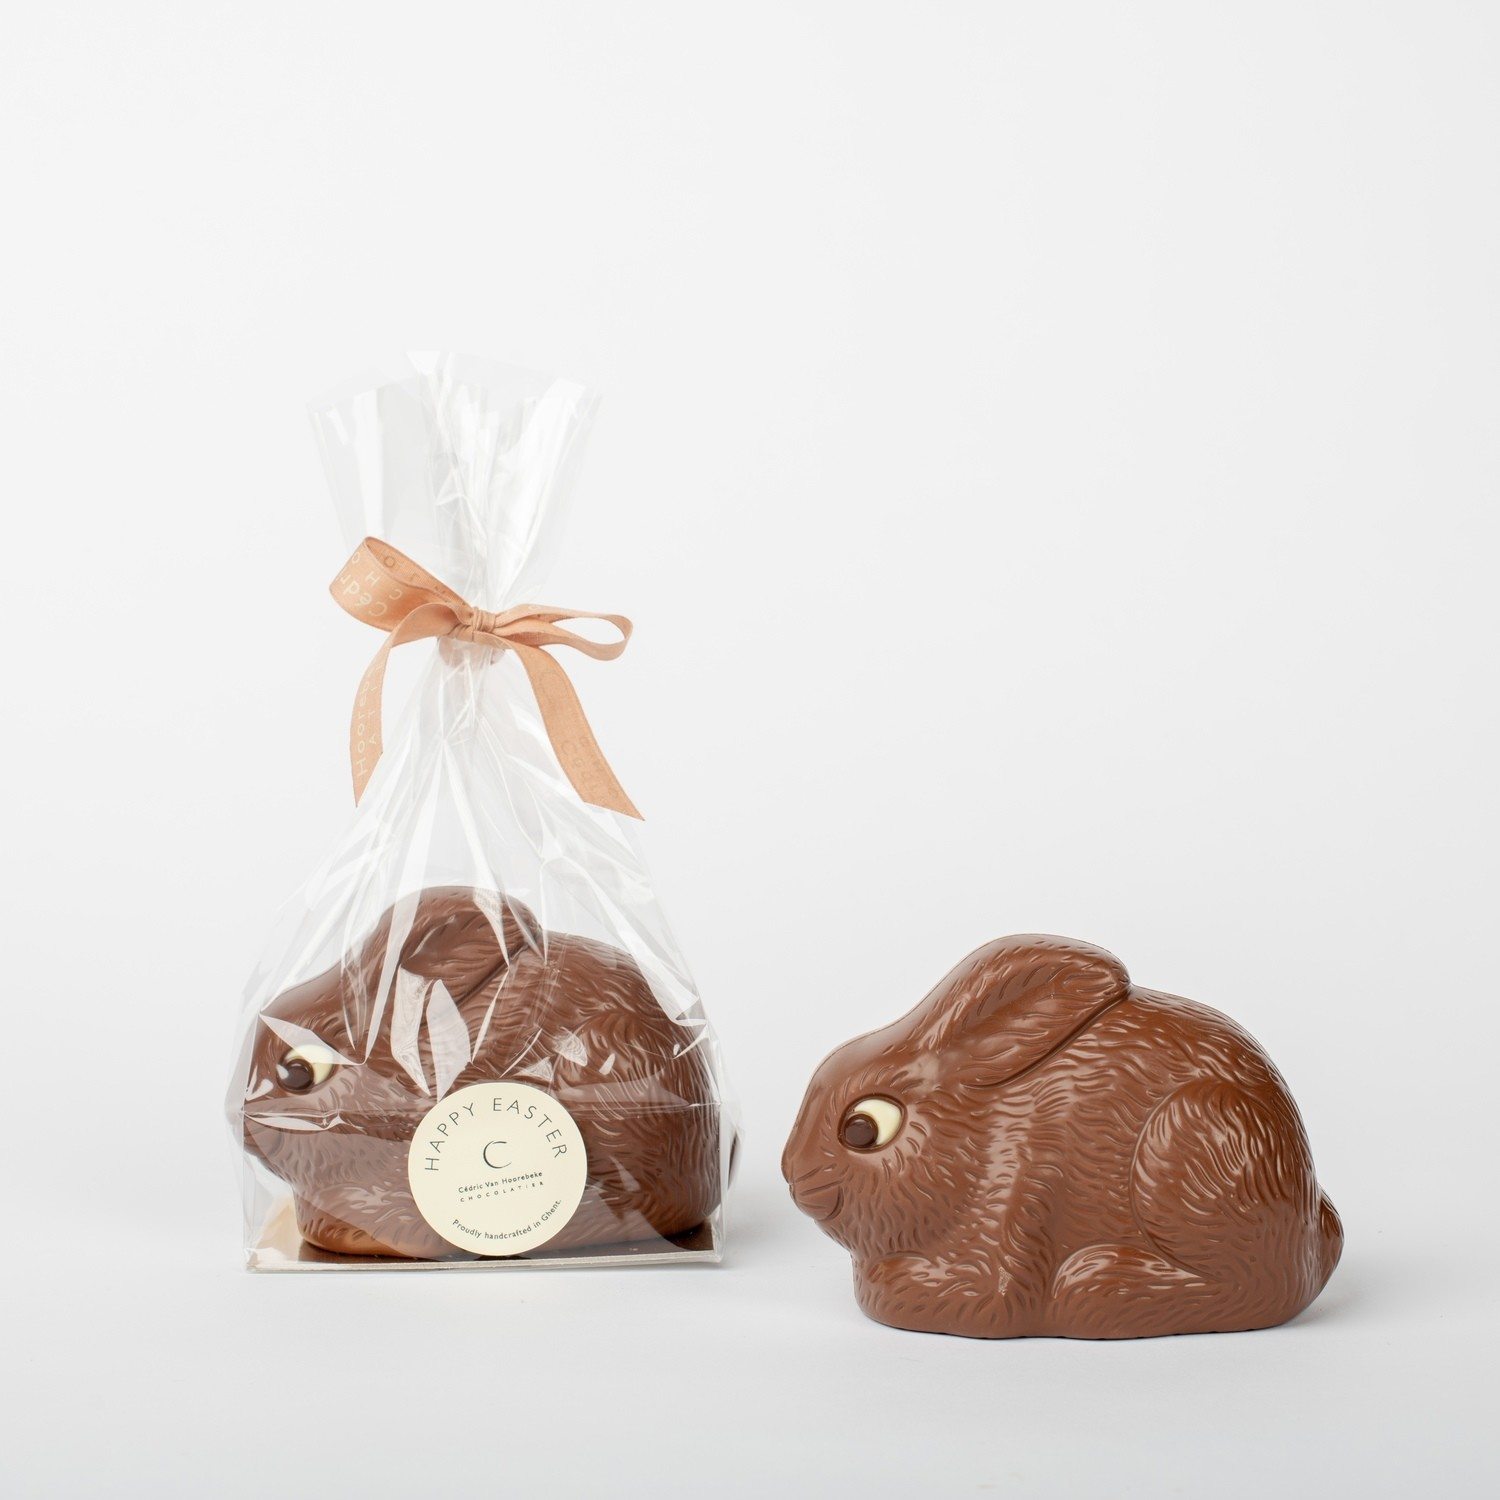 Dwarf rabbit - classic milk chocolate 33%